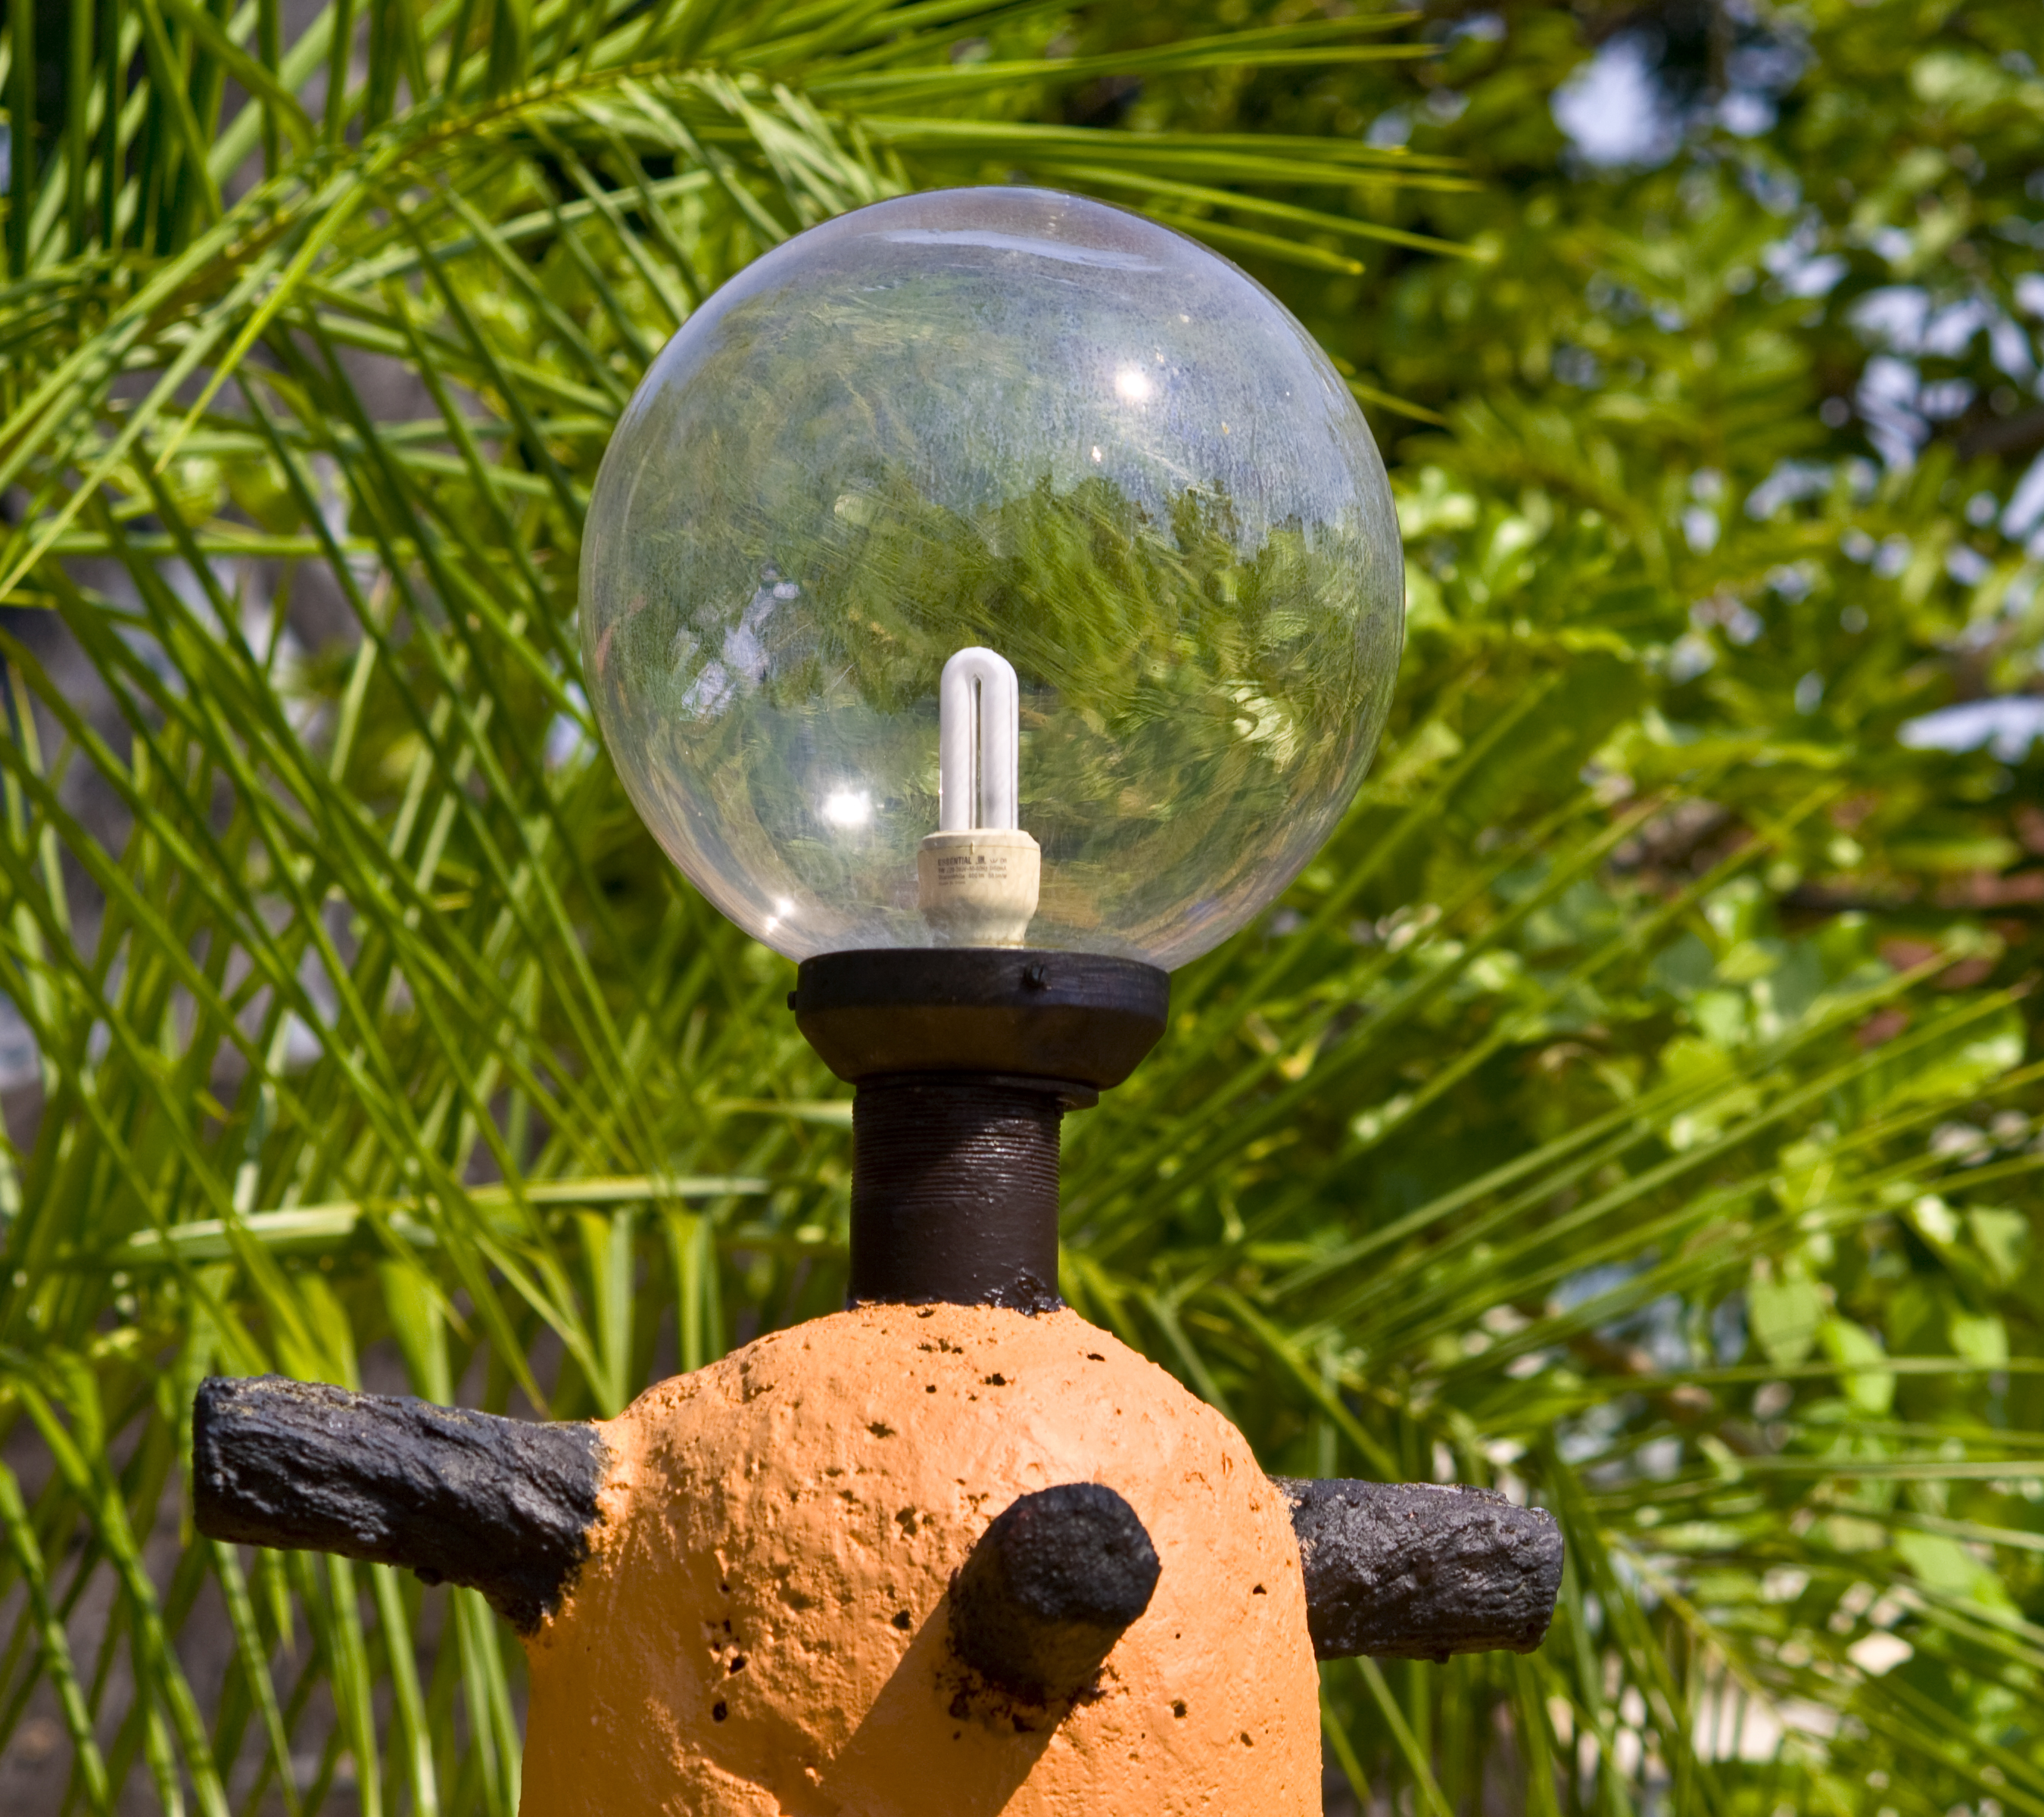 Bulb Outdoor Lamp, Alone, Neon, Tree, Torch, HQ Photo